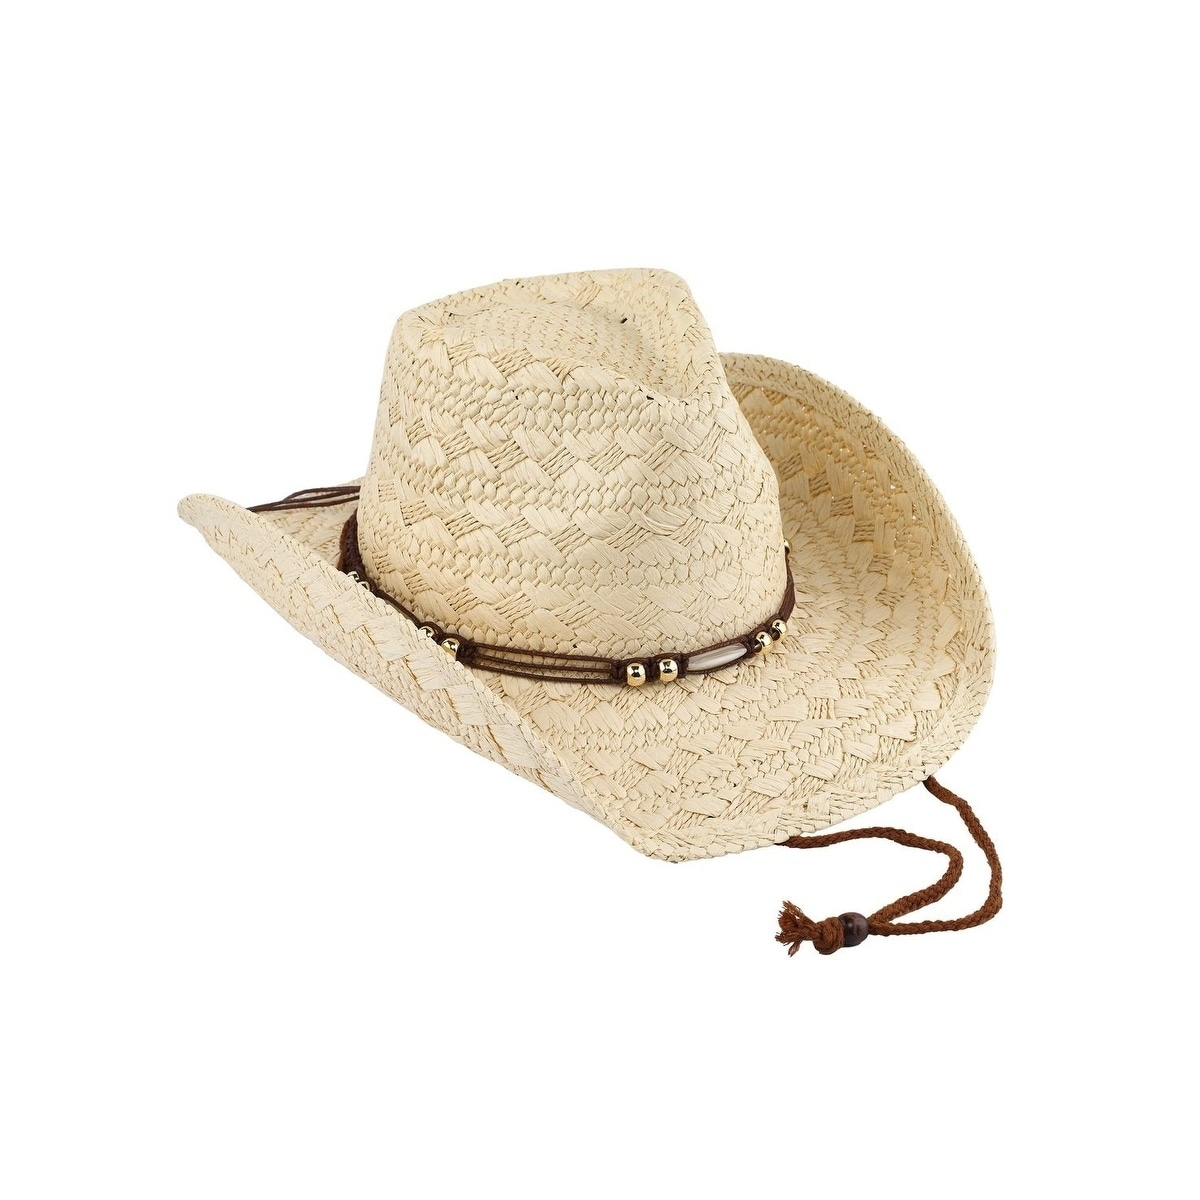 Access Headwear Women s Old Stone Jess Cowboy Drifter Style Sun Hat (4  Colors Available) 9a44b11a413